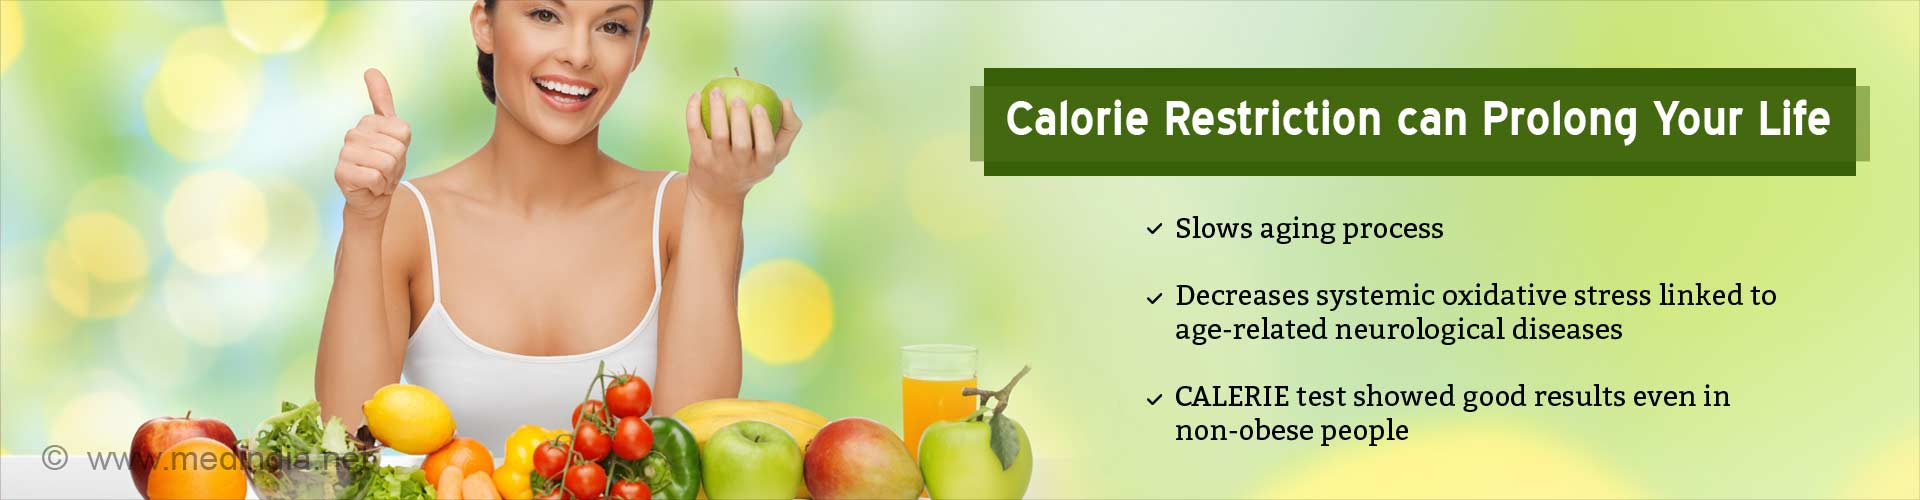 calorie restriction can prolong your life